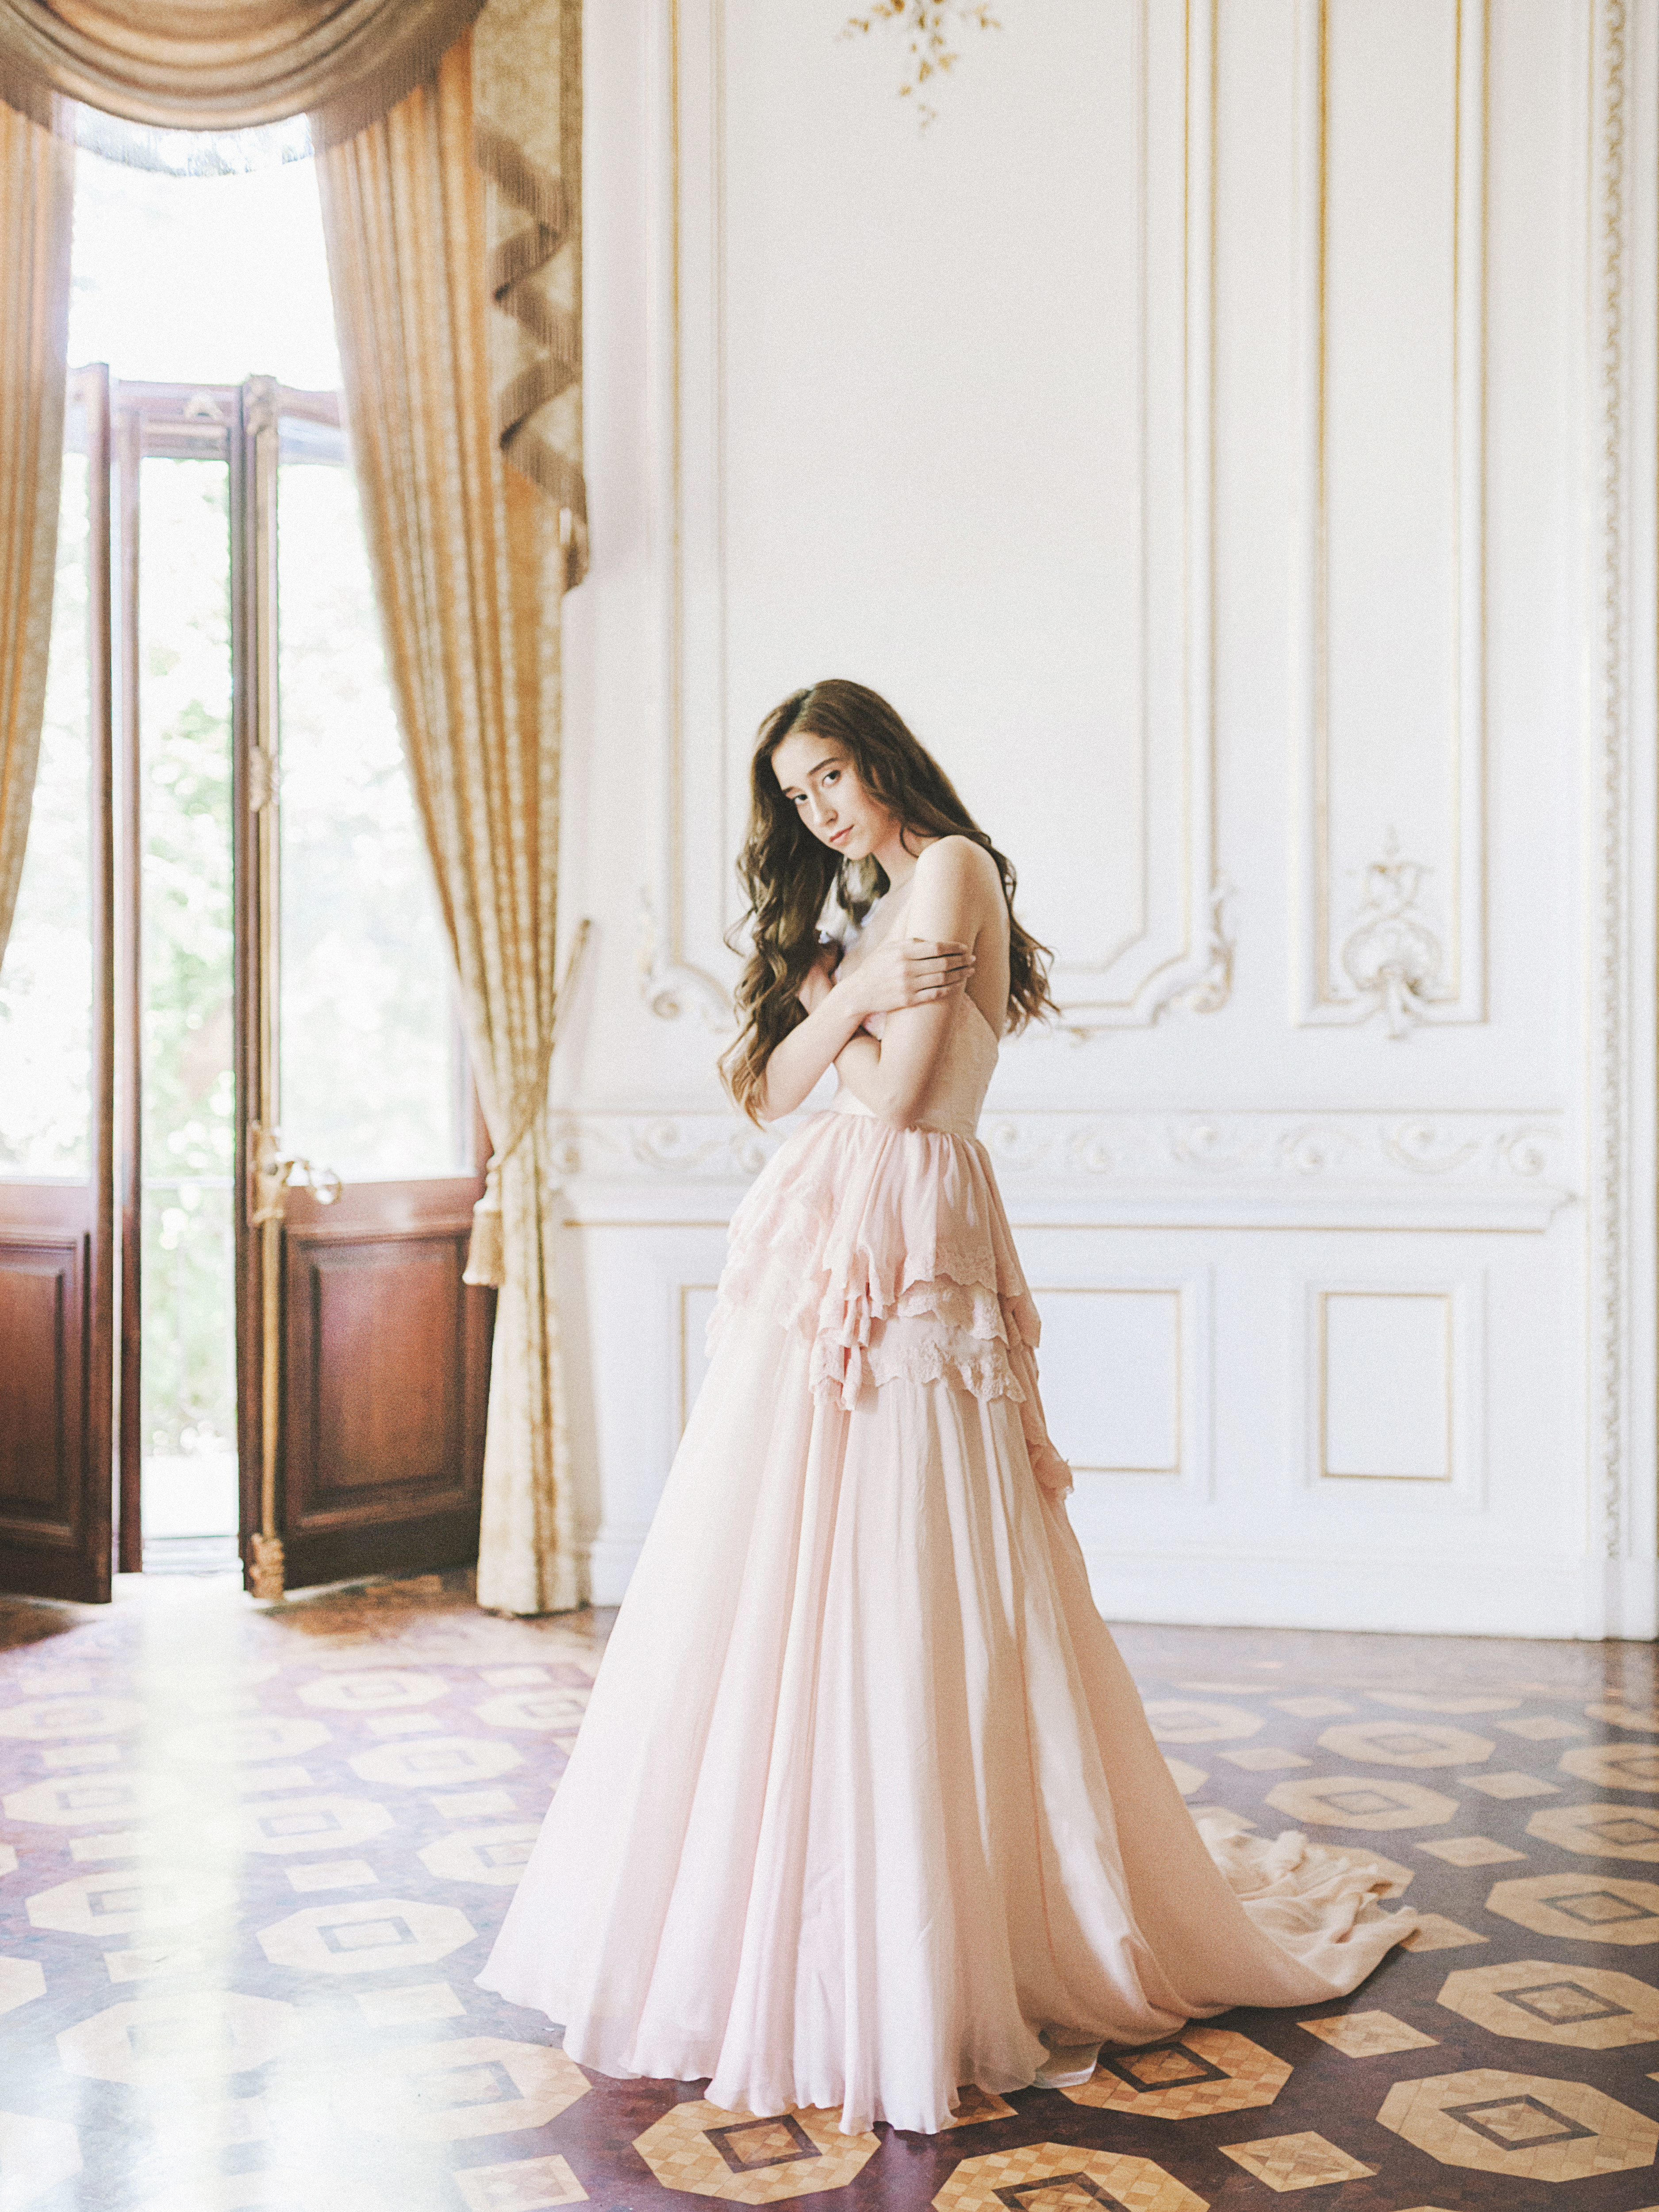 021324a4b11 Home Wedding Dresses Pink strapless wedding gown with tiered skirt. 🔍.  Previous  Next